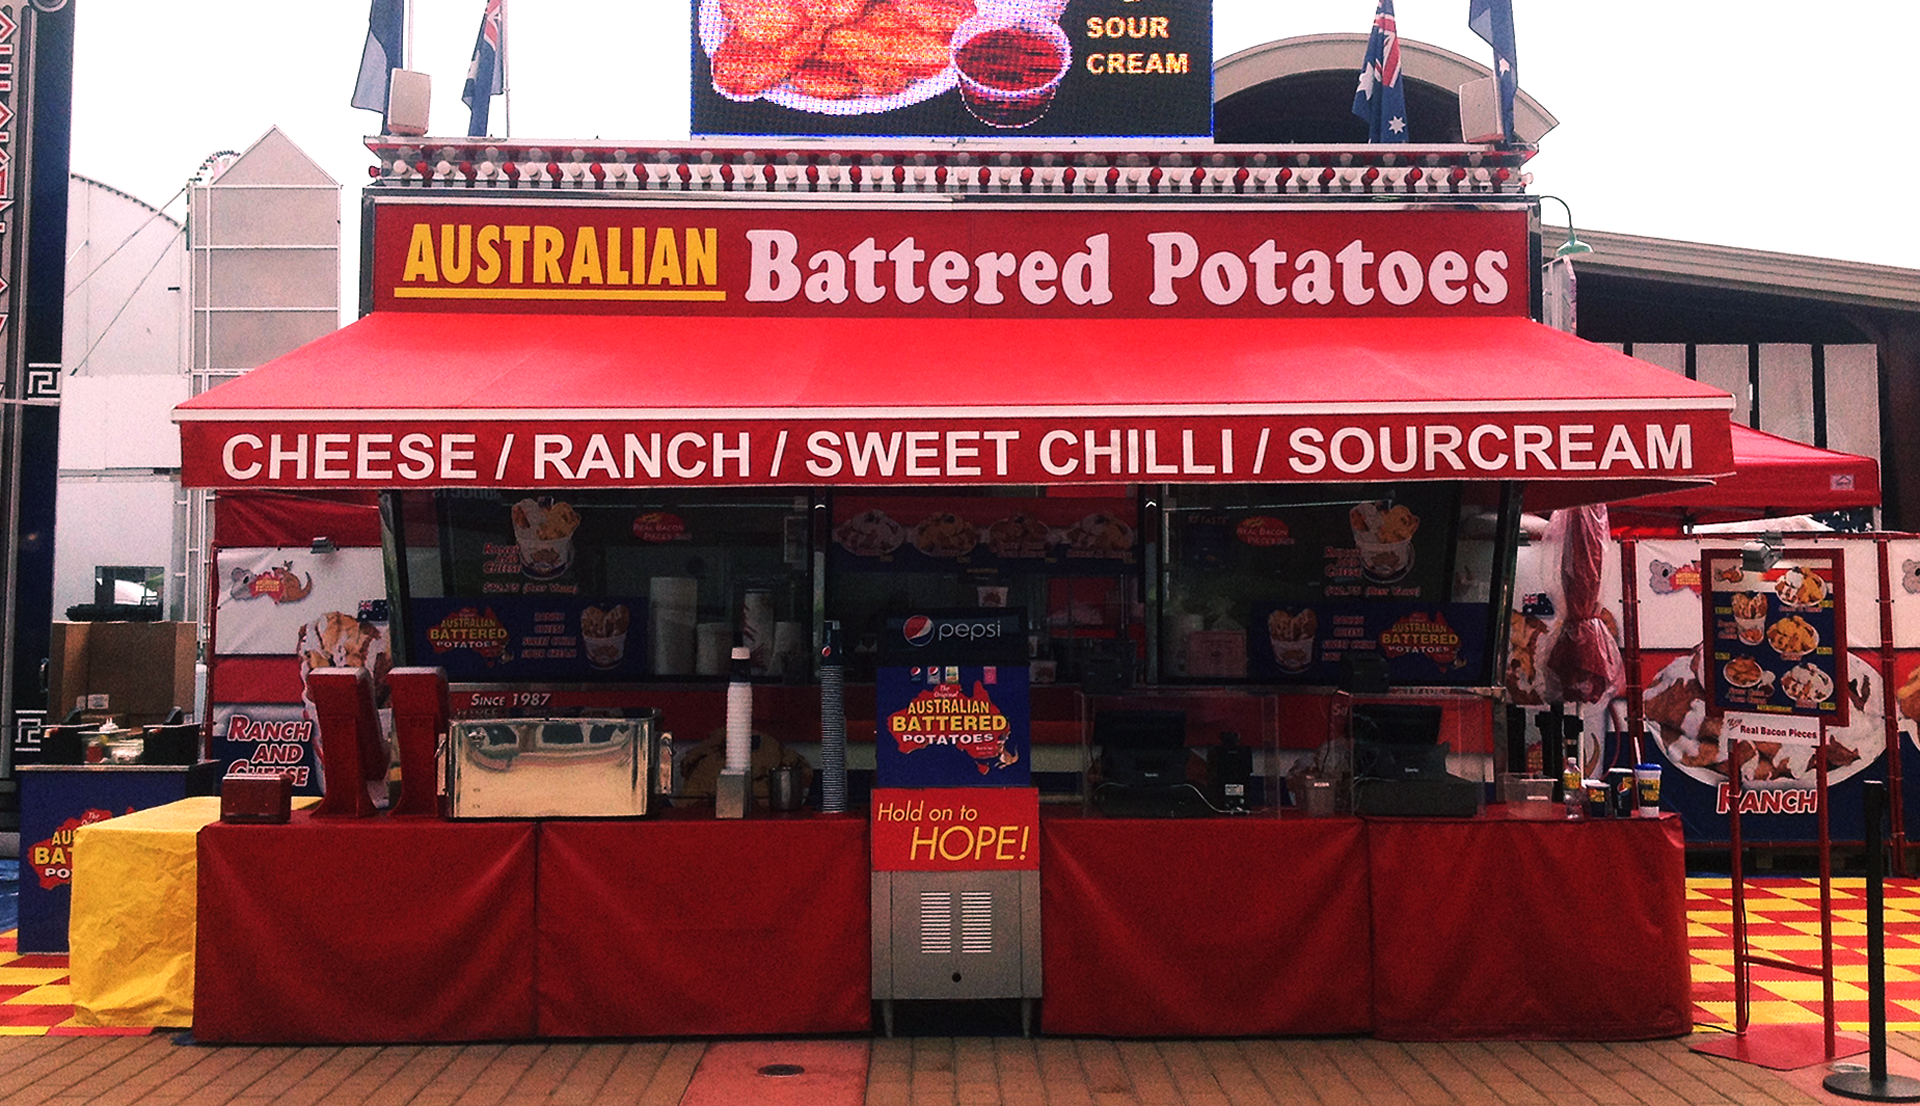 Australian-Battered-homepage-backdrop